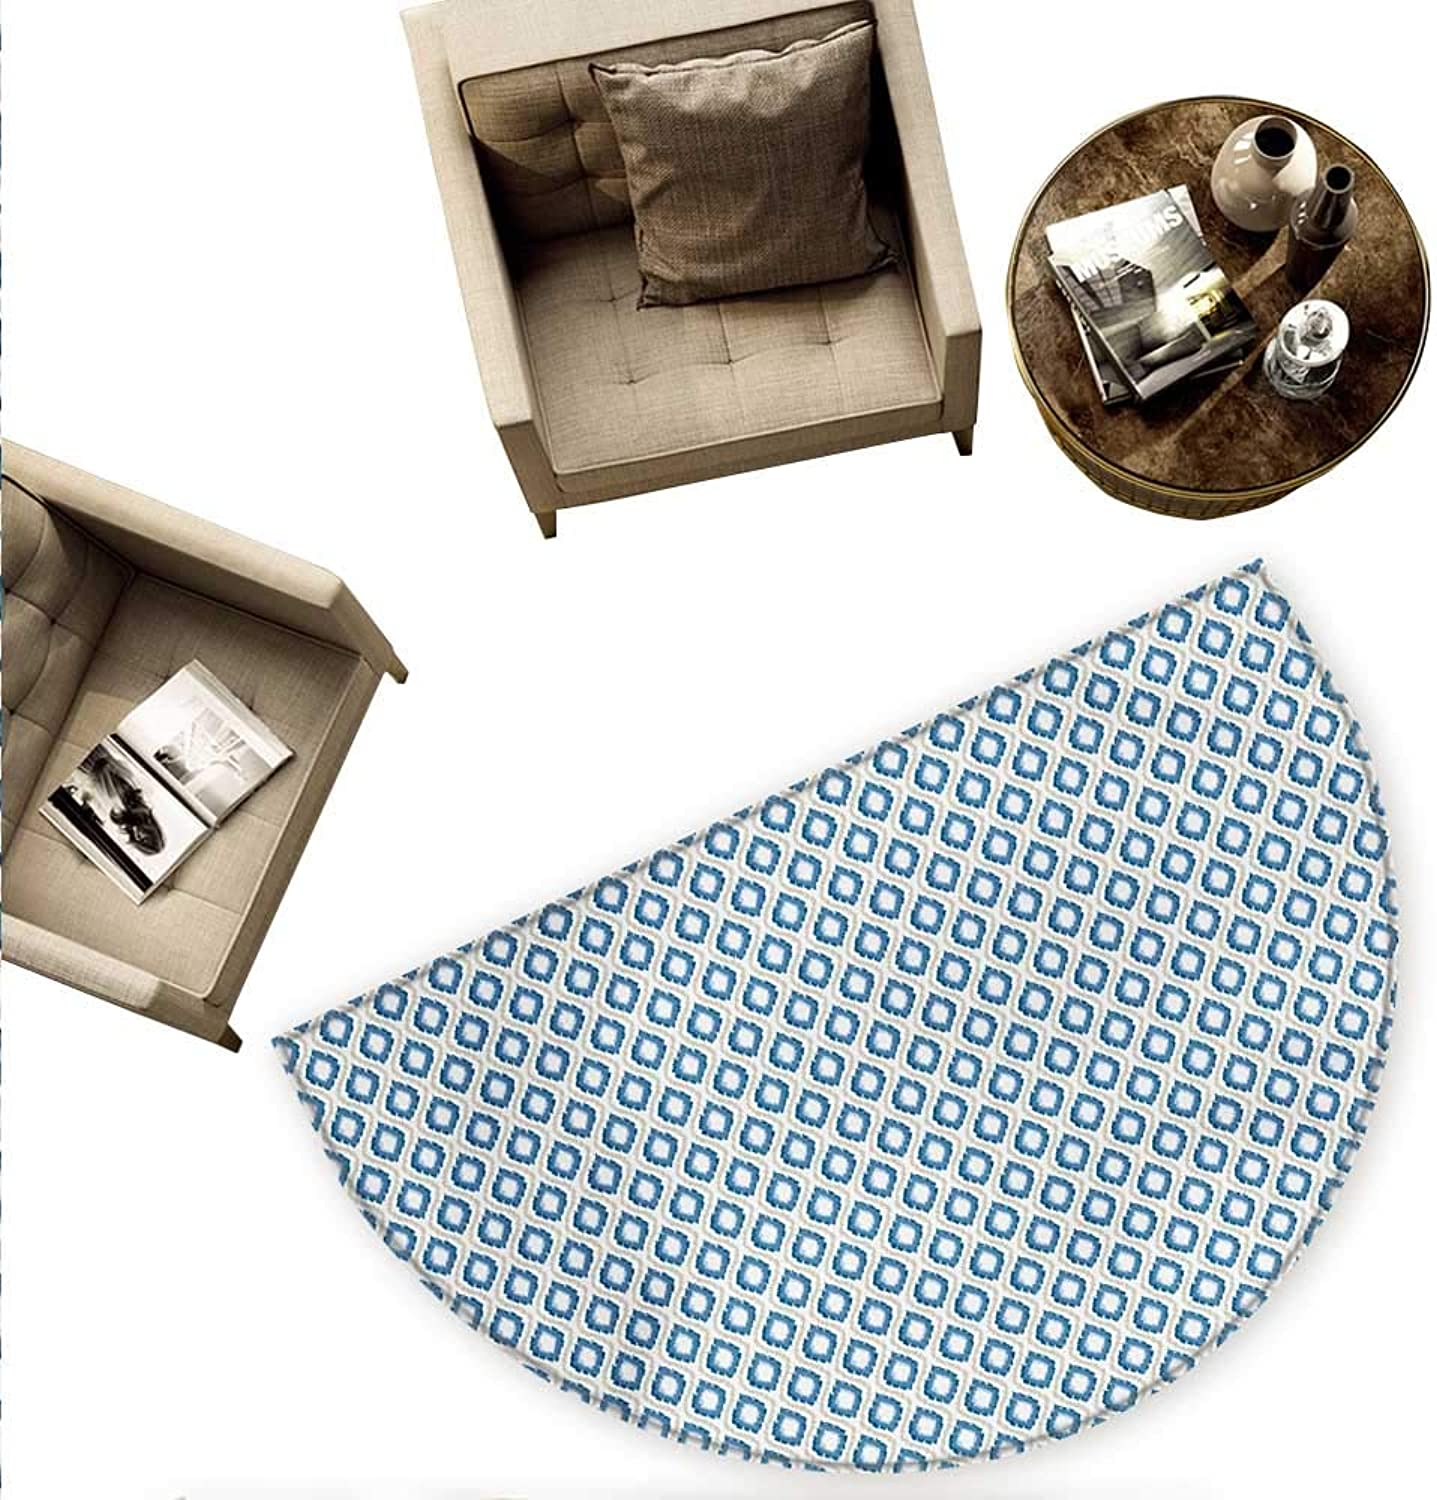 Ikat Semicircular Cushion Nautical Inspired Abstract Geometrical Shapes Rhombus Lines Squares Pattern Entry Door Mat H 63  xD 94.5  bluee Beige White